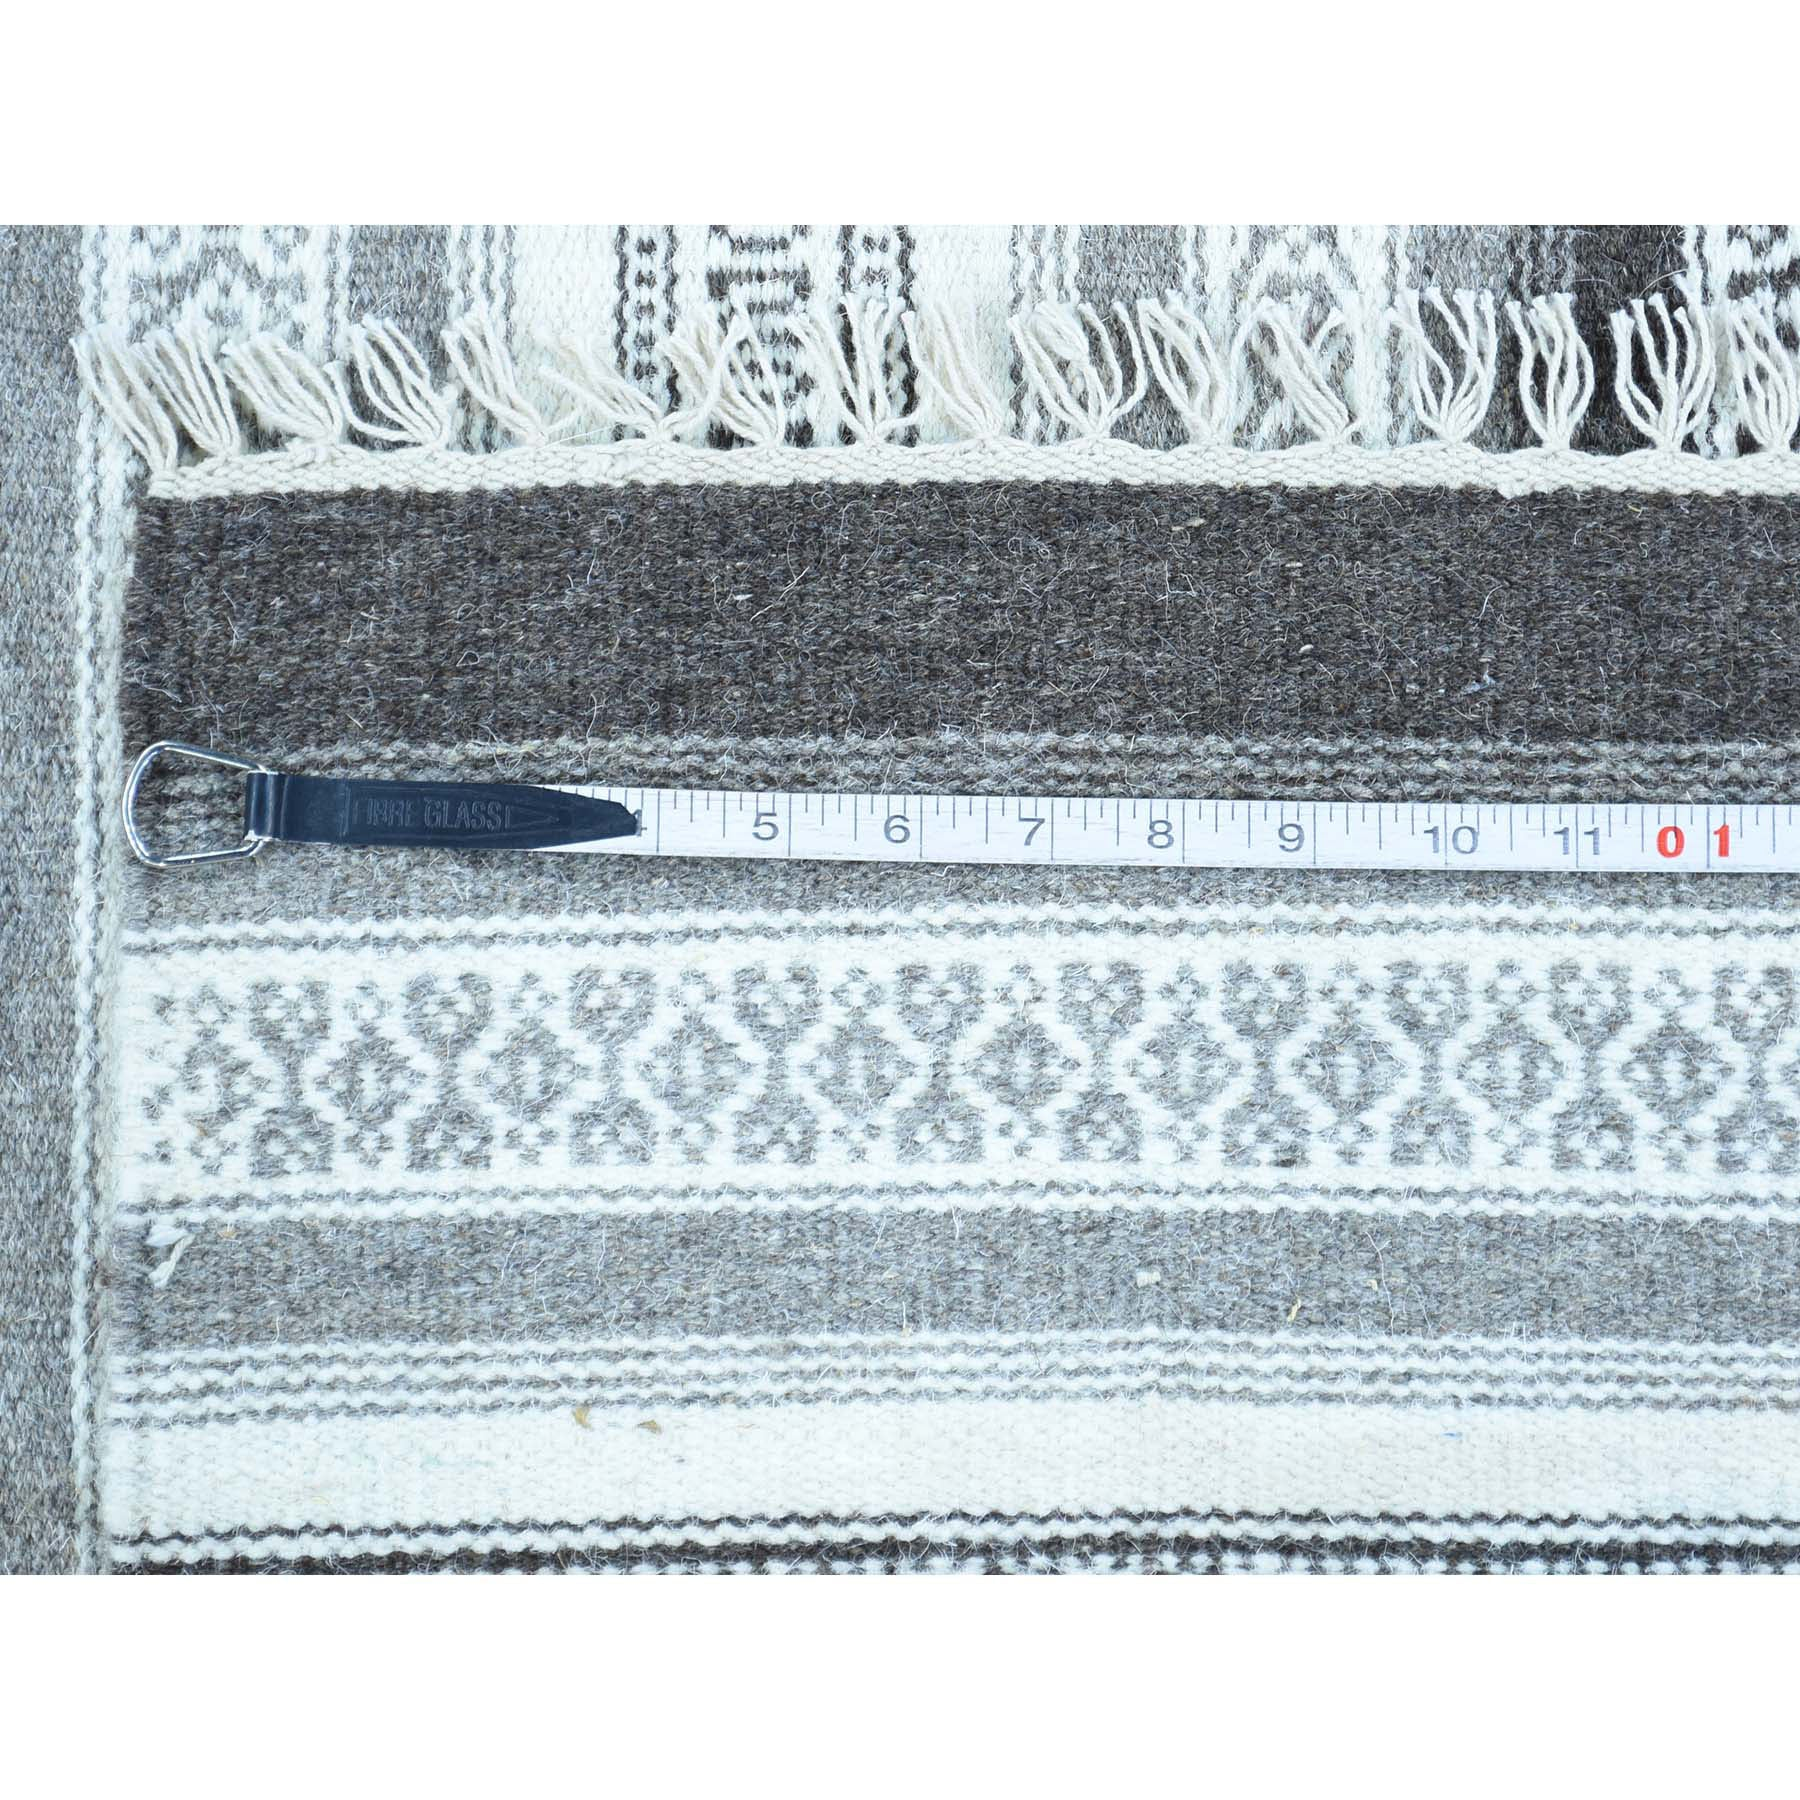 "Handmade Flat Weave Rectangle Rug > Design# SH31869 > Size: 3'-0"" x 5'-1"" [ONLINE ONLY]"